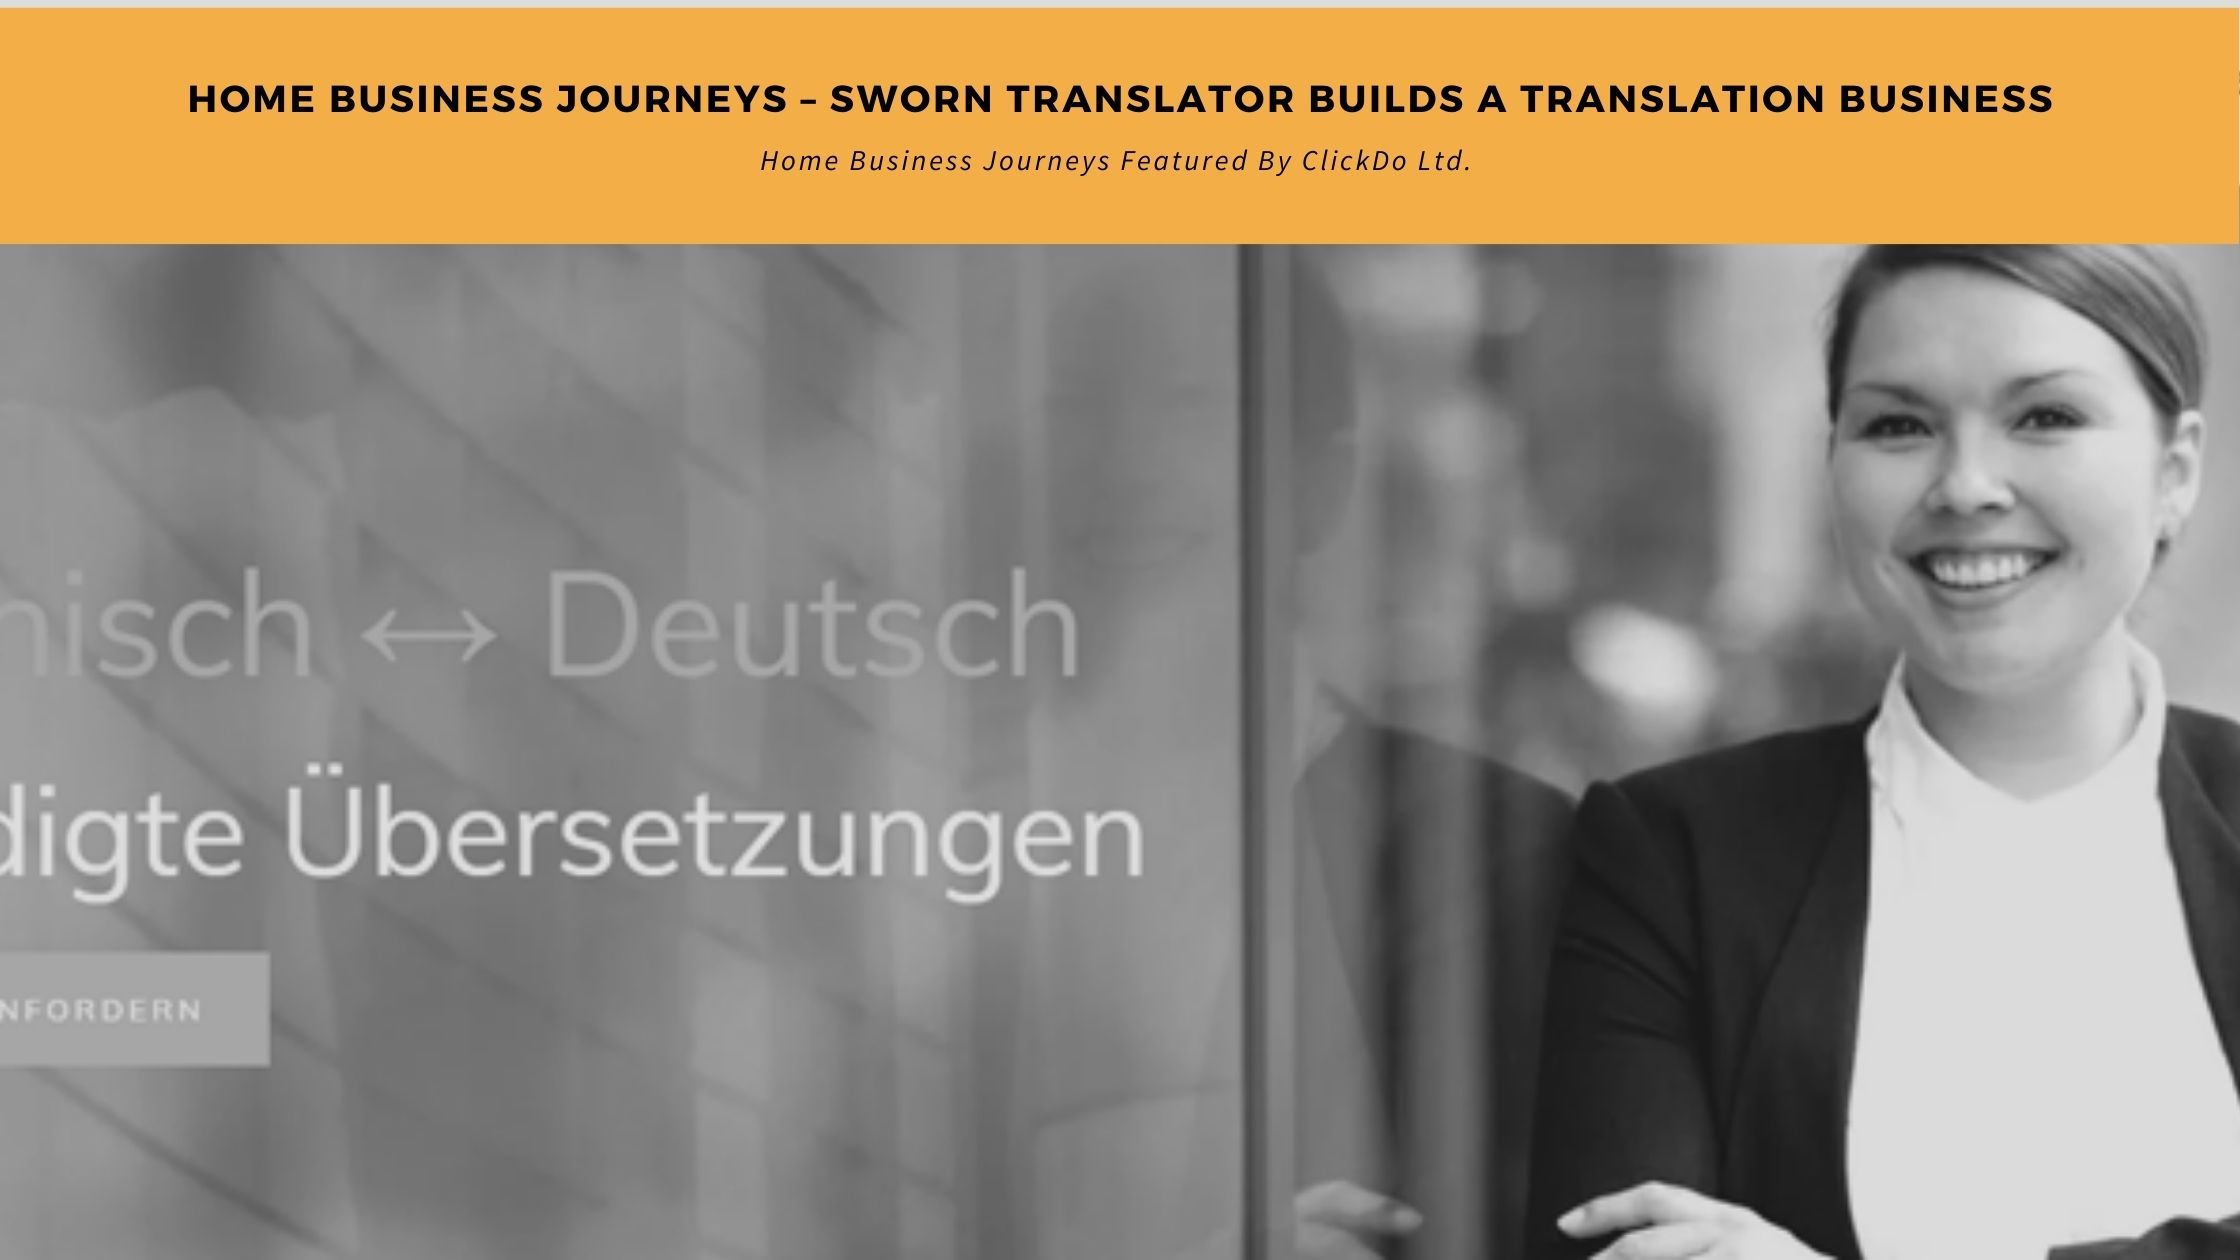 Trained-translator-builds-freelance-translation-home-business-online-in-Germany